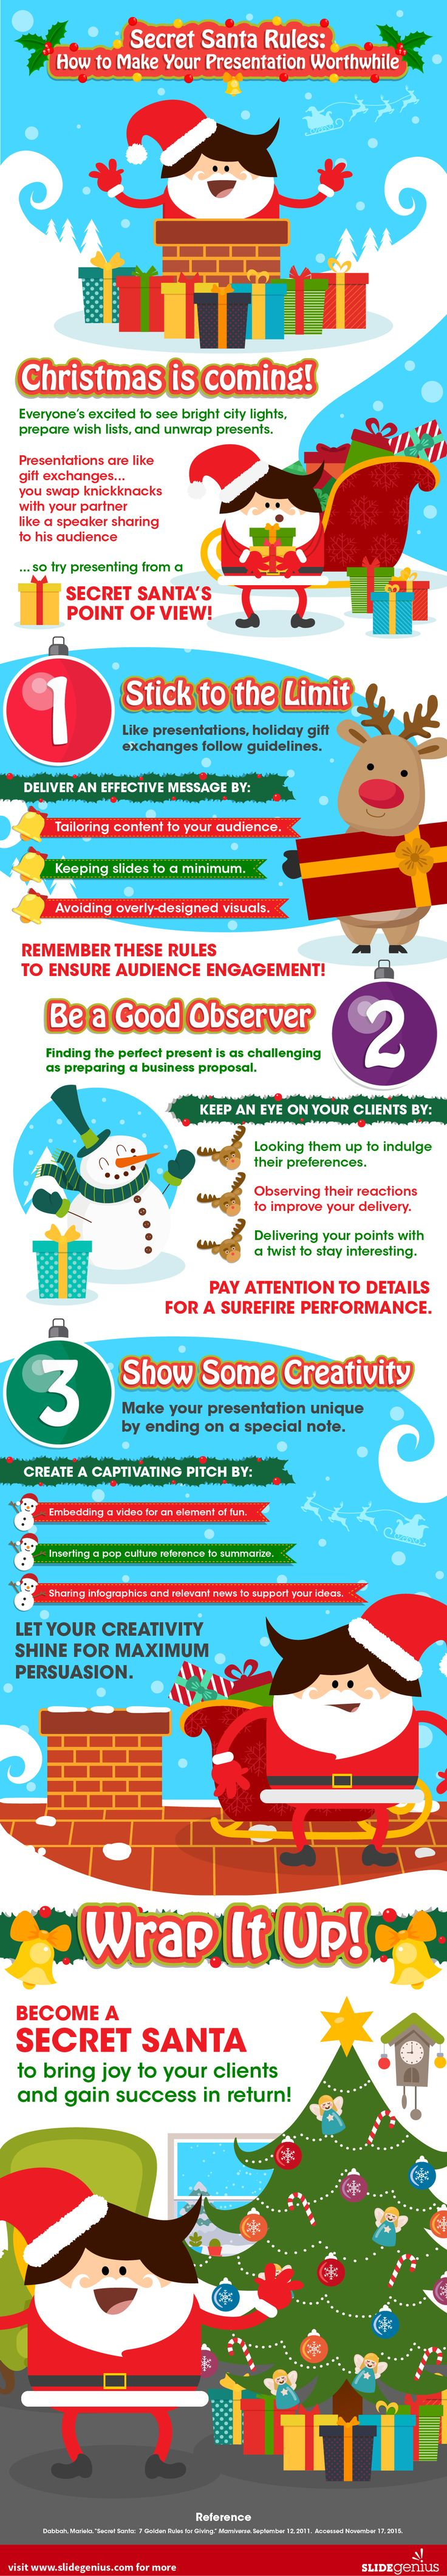 Secret Santa: How to Make Your Presentation Worthwhile Christmas is in the air. Present to your audience from a secret Santa's point of view to bring cheer to everyone and make your presentation worthwhile!  #business #contentmarketing #infographics #slidegenius #b2b #blog #digitalmarketing #content #marketing #leads #prospects #audience #slidegenius #branding #brand #brandstrategy #socialmedia #smm #seo #adwords #googleads #videos #videomarketing #biz #entrepreneur #presentation #microsoft